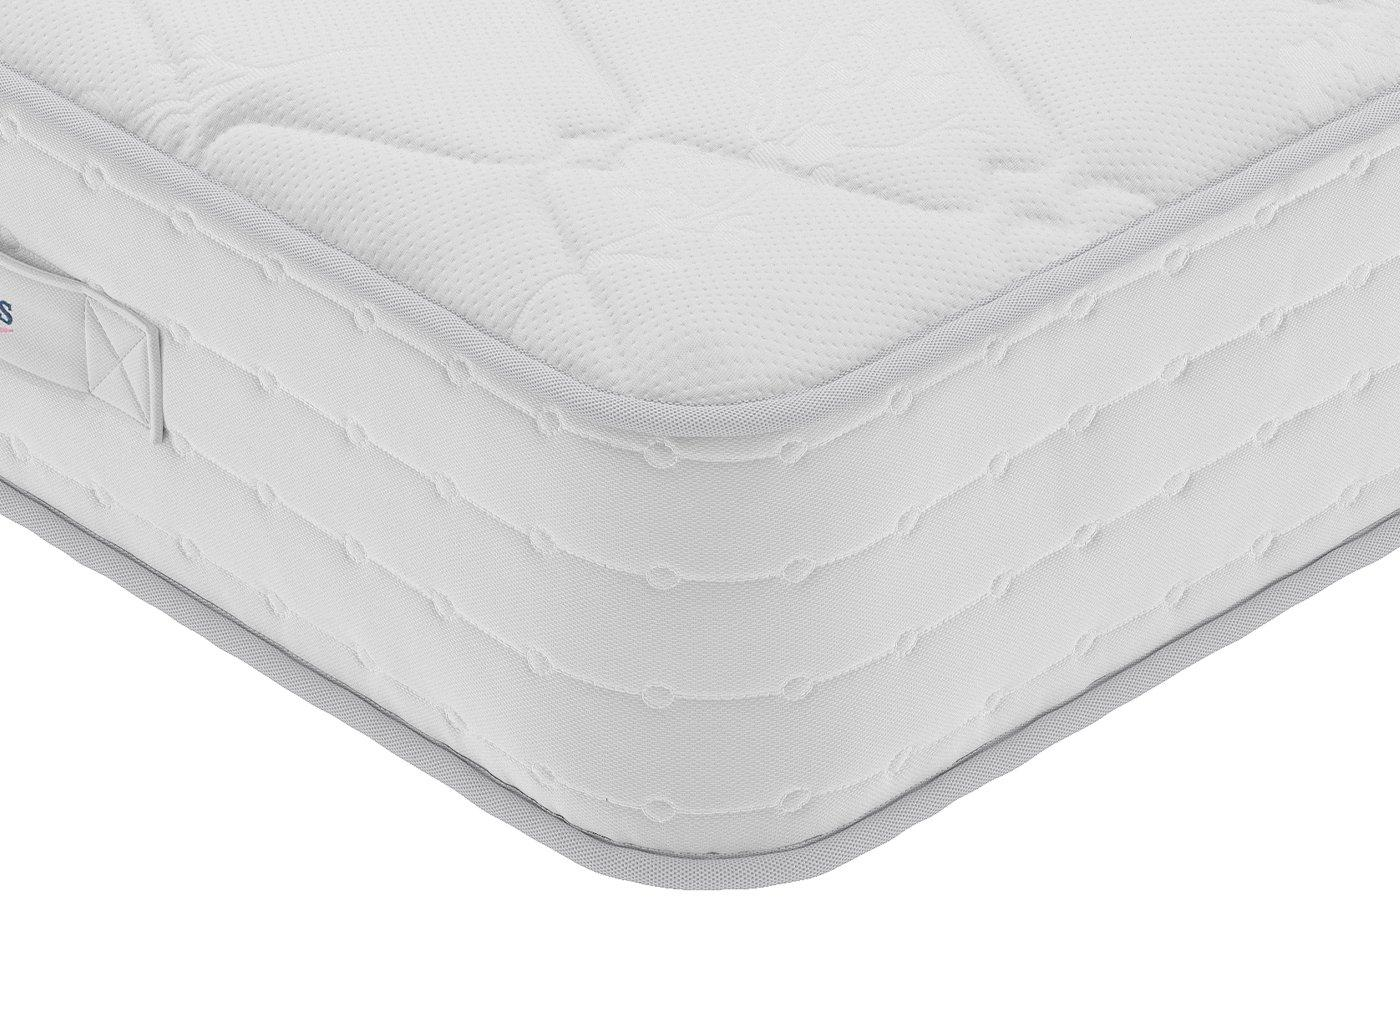 Johnstone Pocket Sprung Mattress - Medium - 1000 Springs